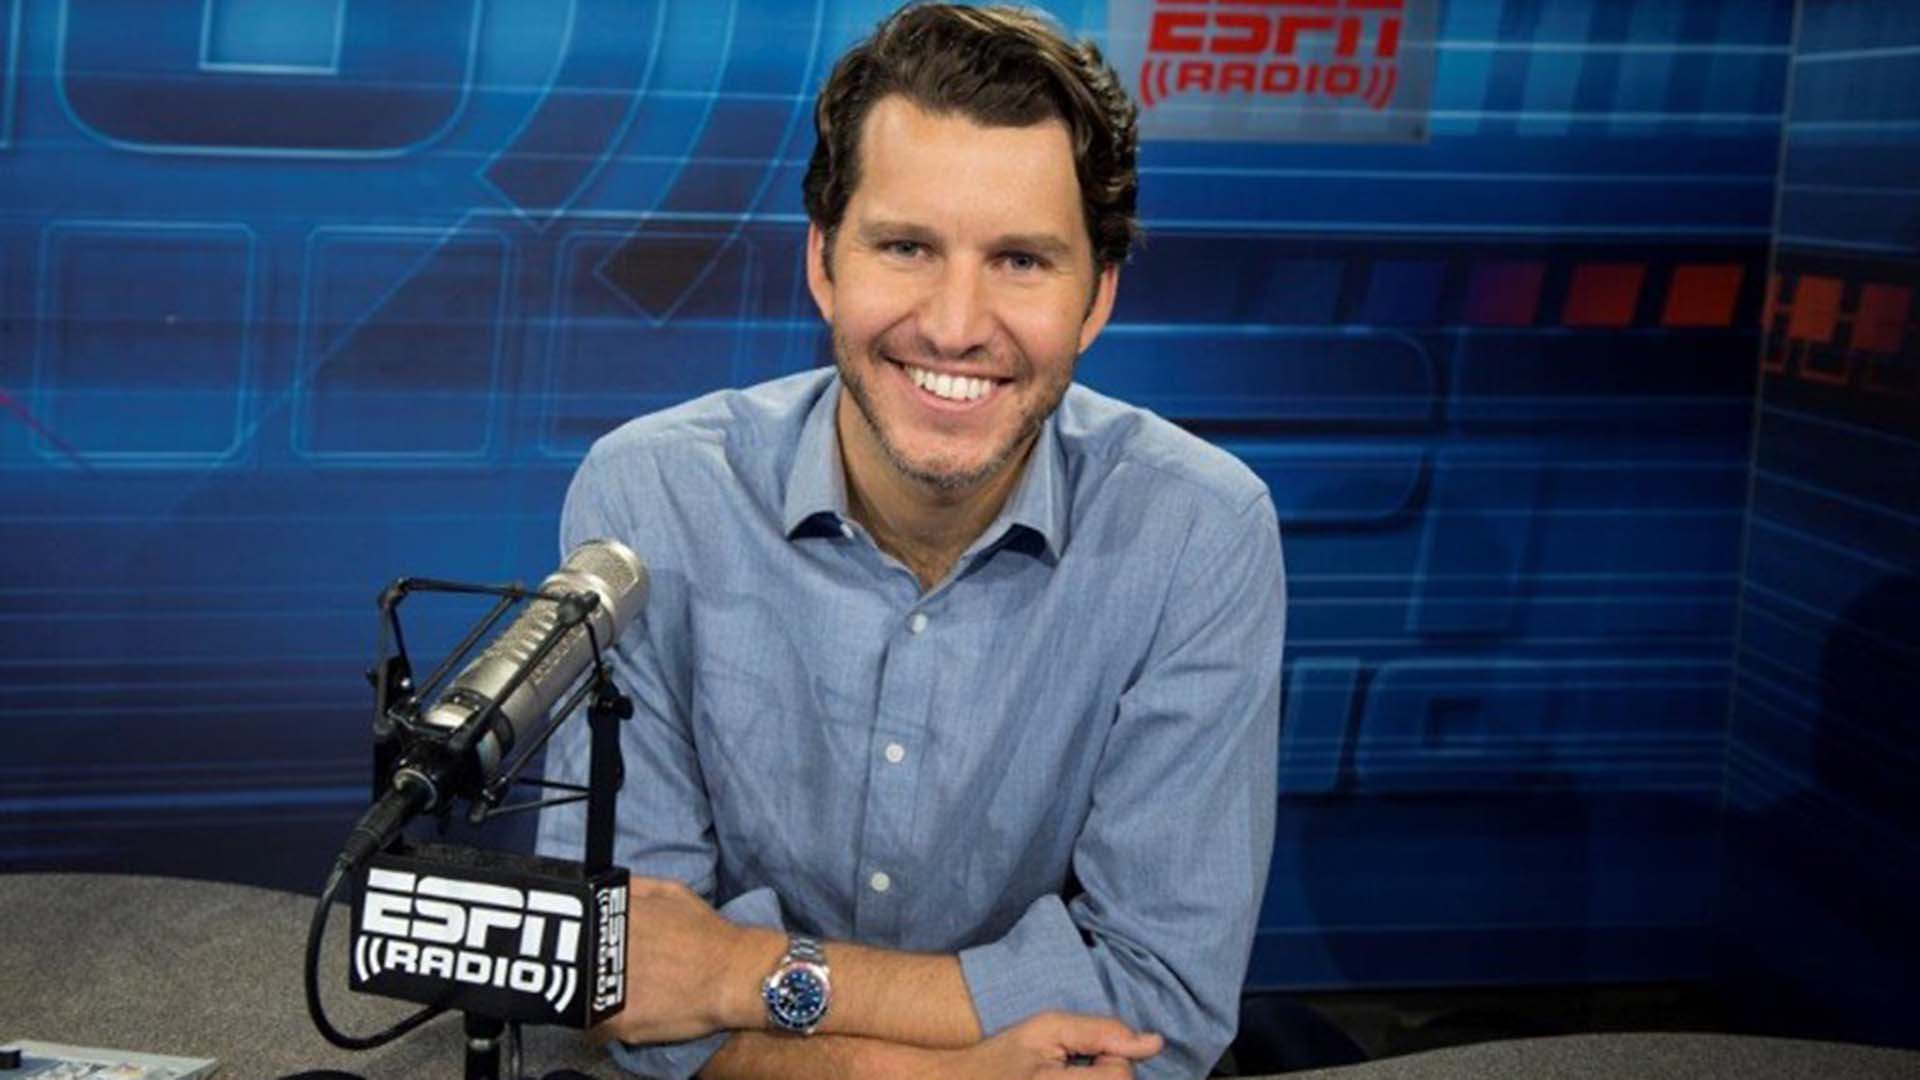 ESPN's outspoken Will Cain not afraid to mix it up with